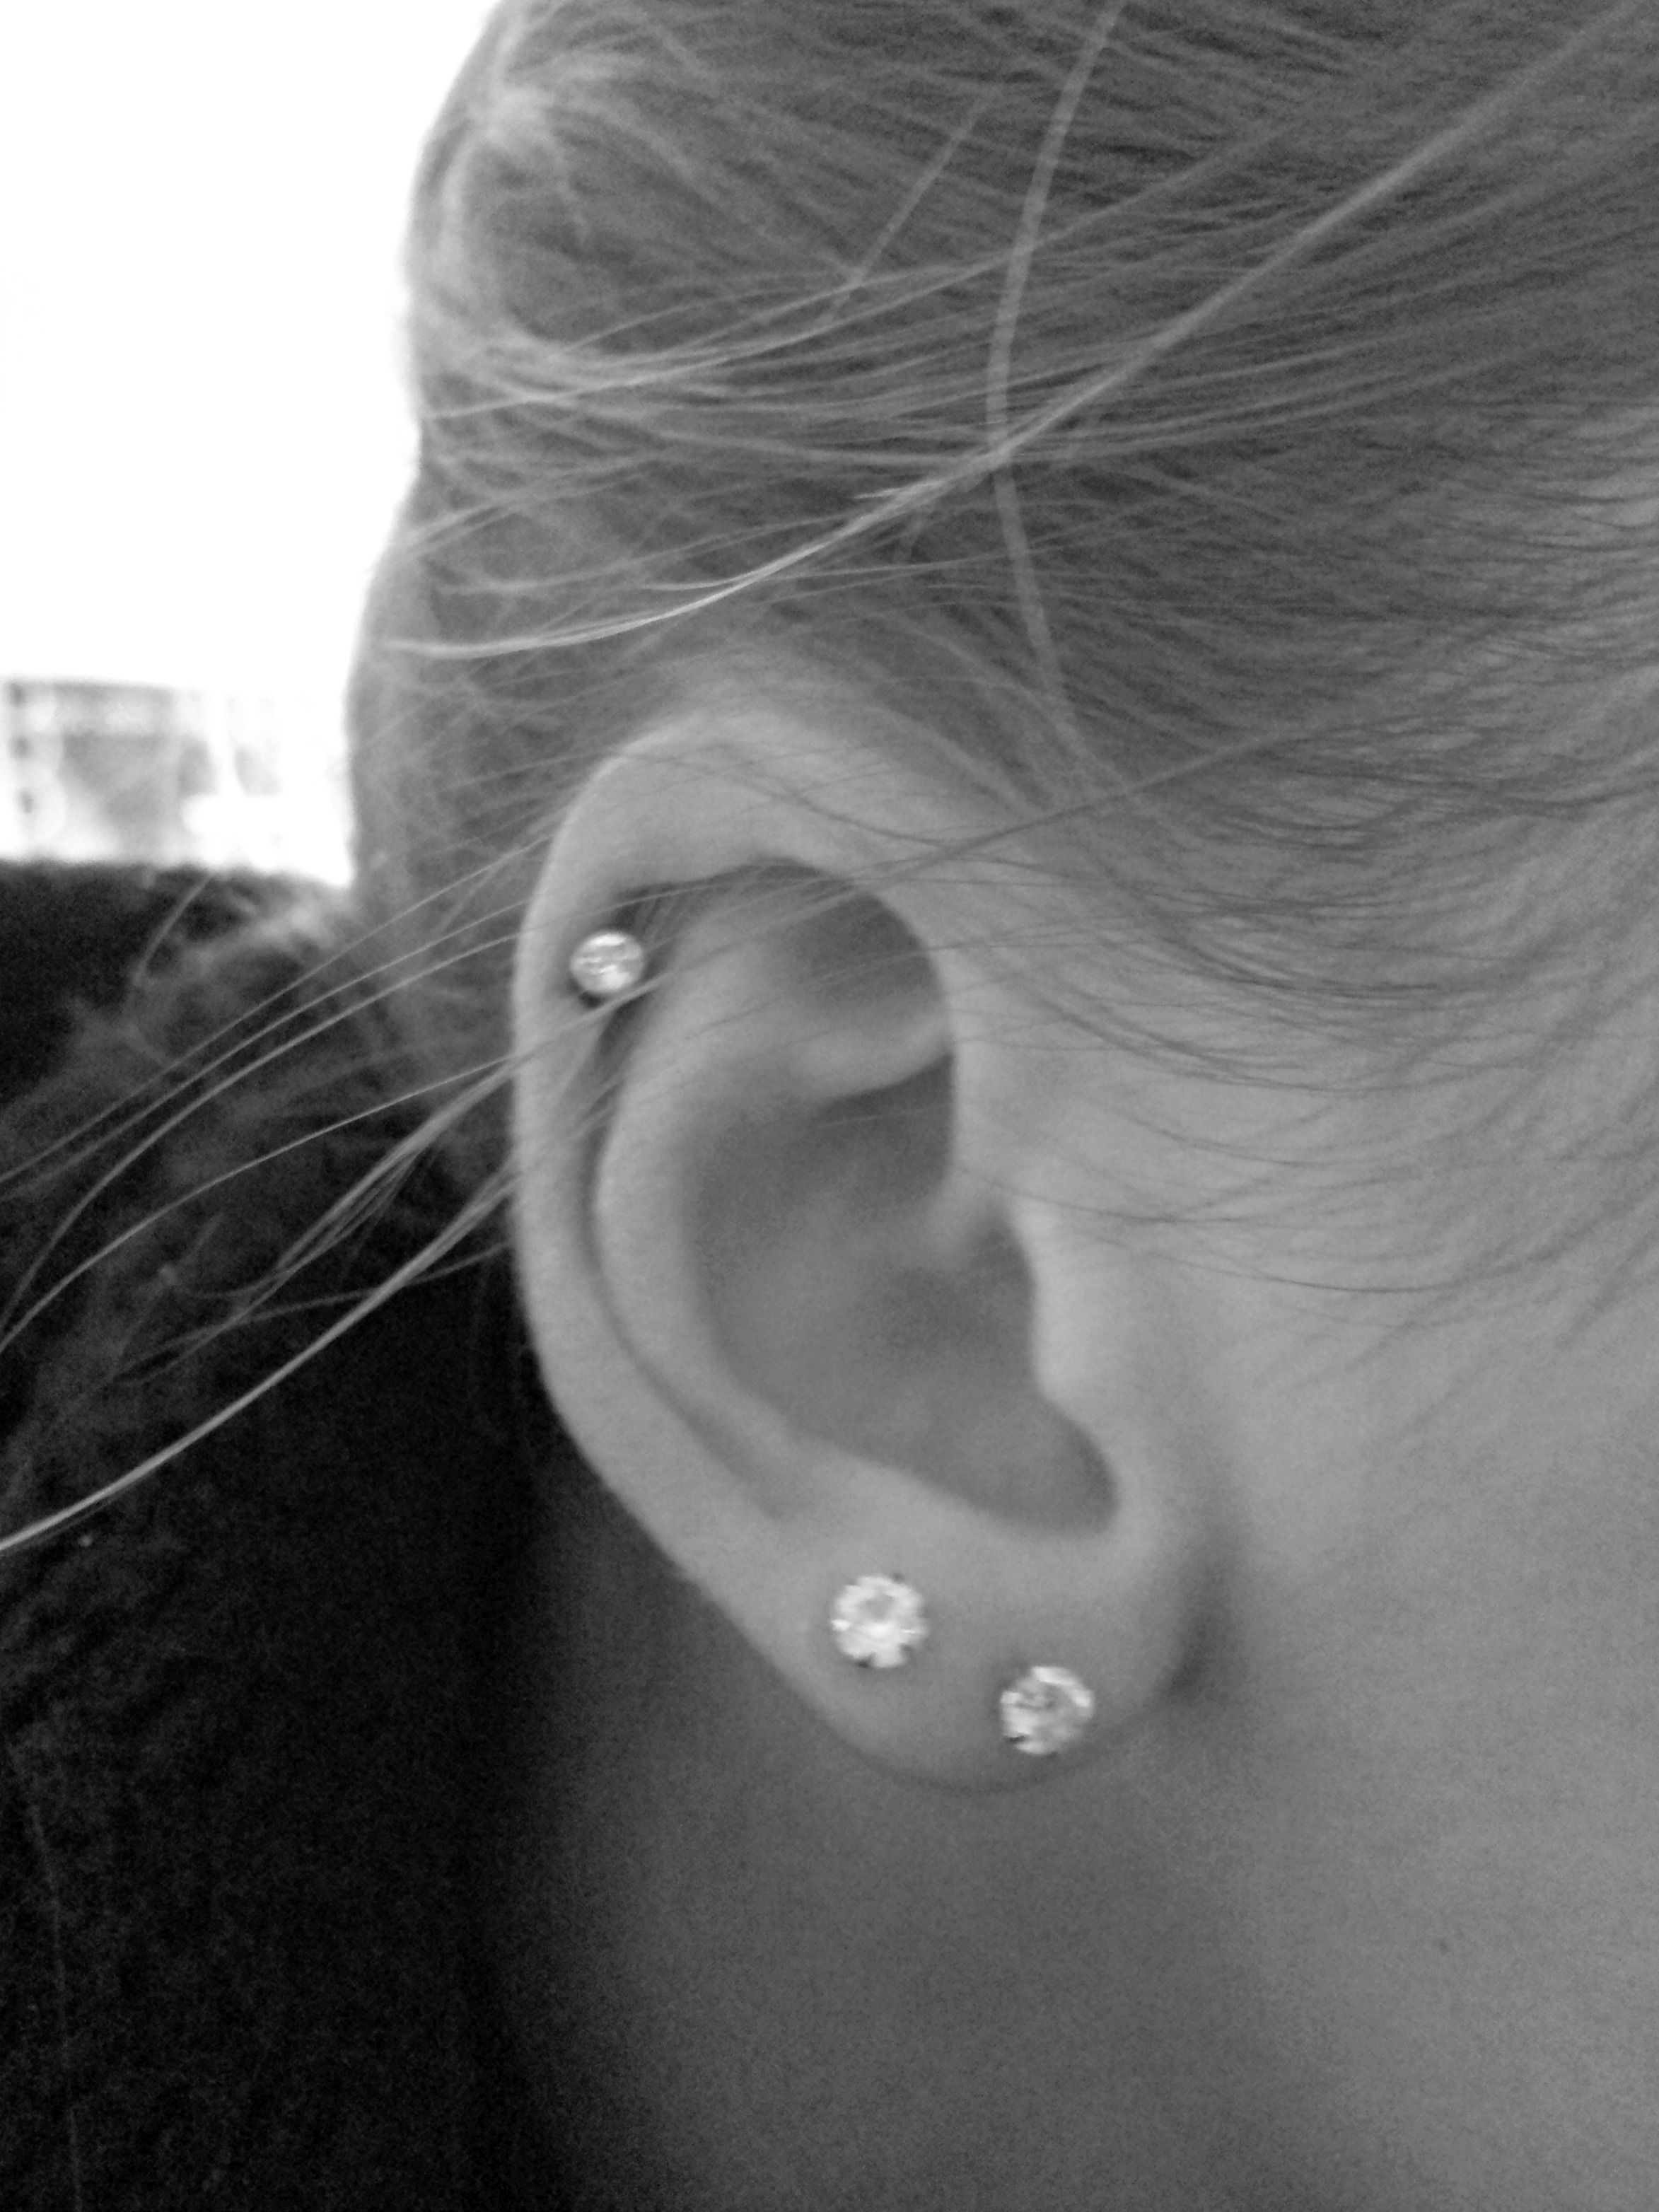 My New Cartilage Piercing :)